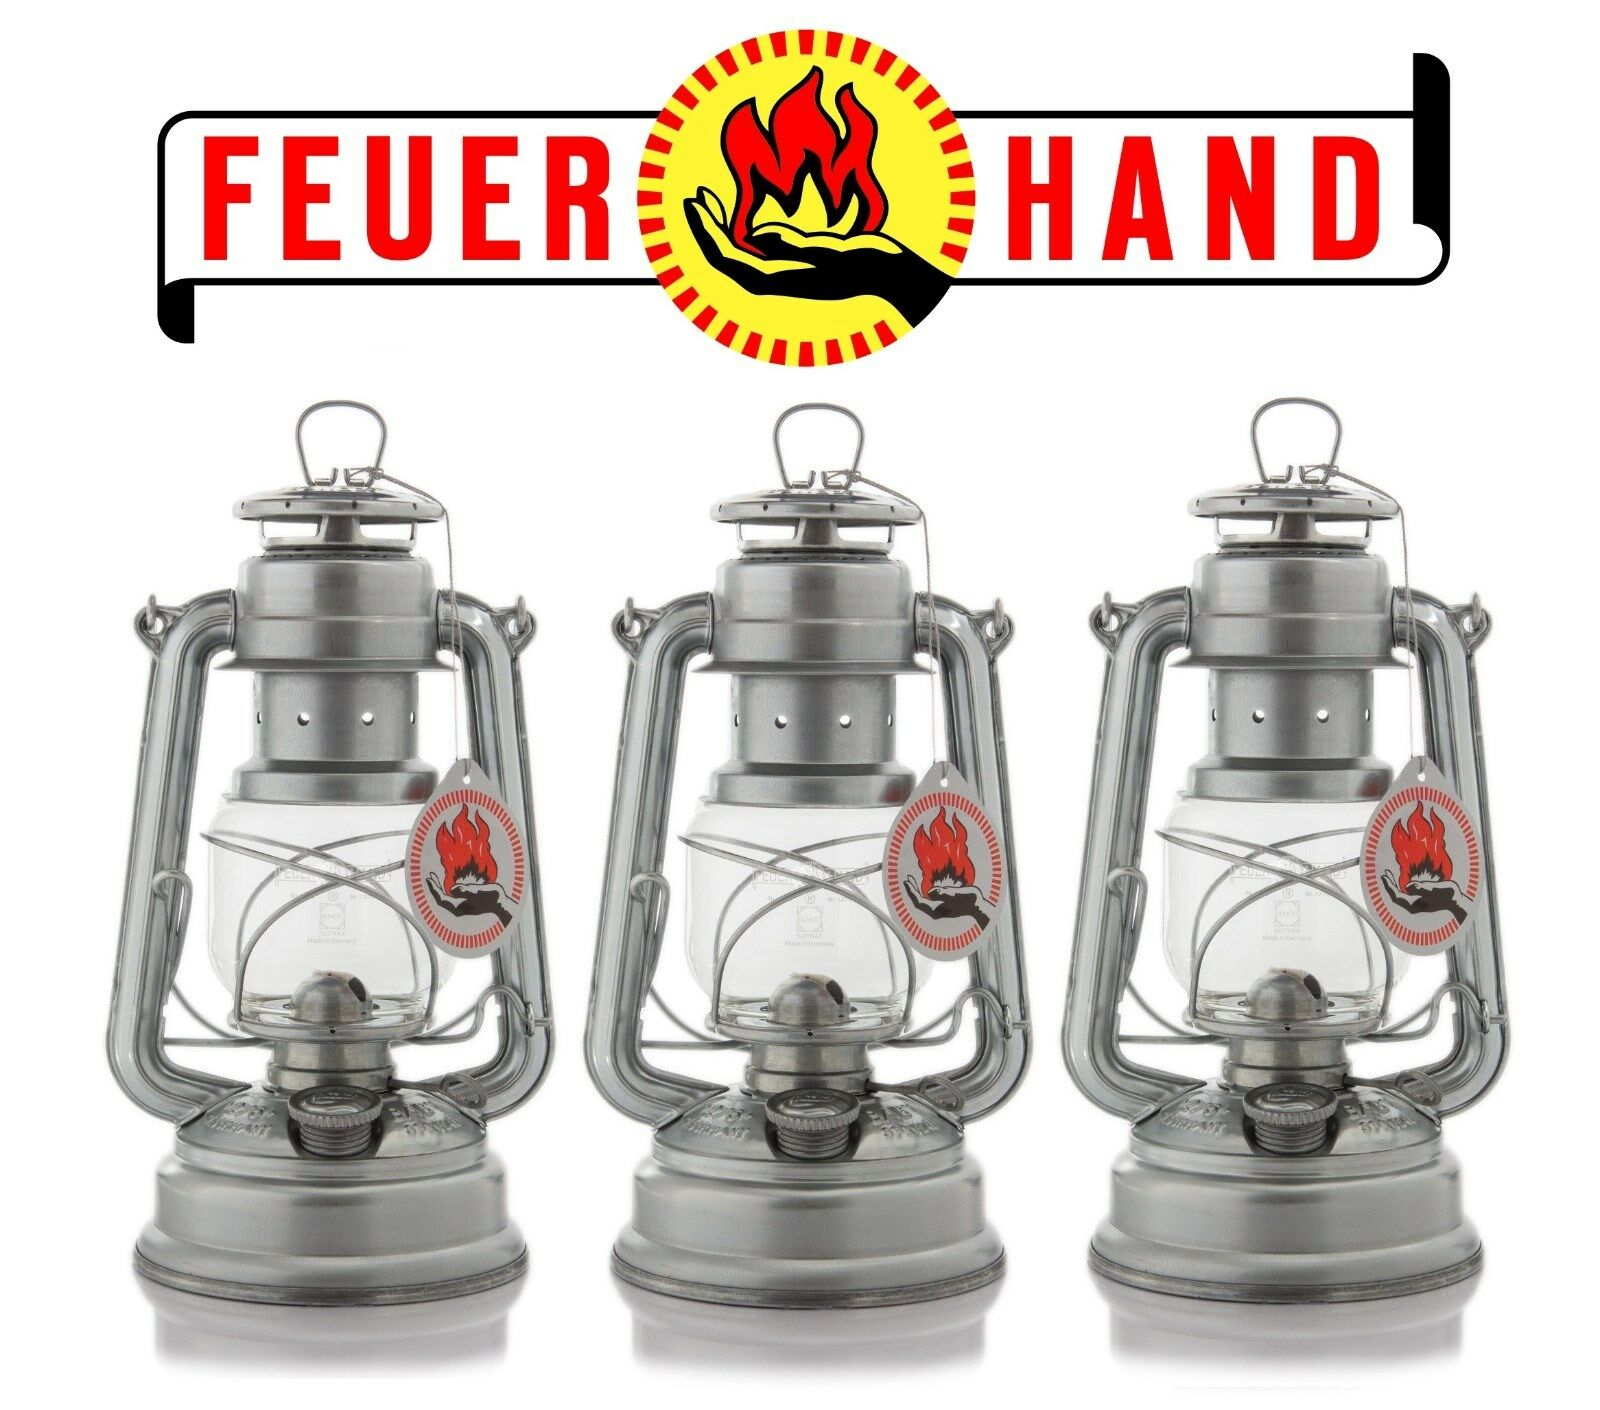 3x Feuerhand 276 Baby Special Petroleu ampe Laterne Lampe Stur aterne